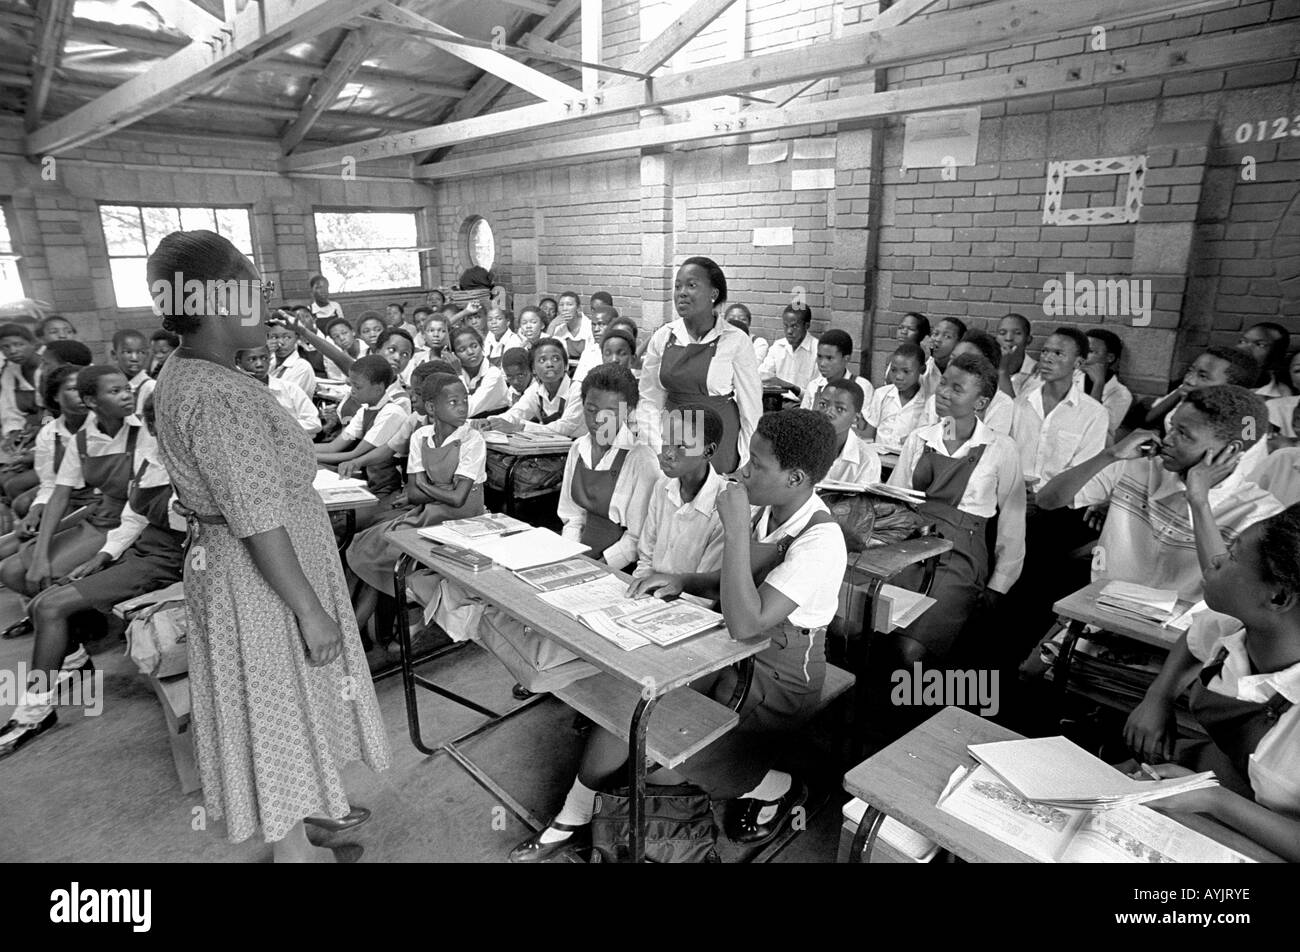 Teaching in a rural African school. Lesotho - Stock Image